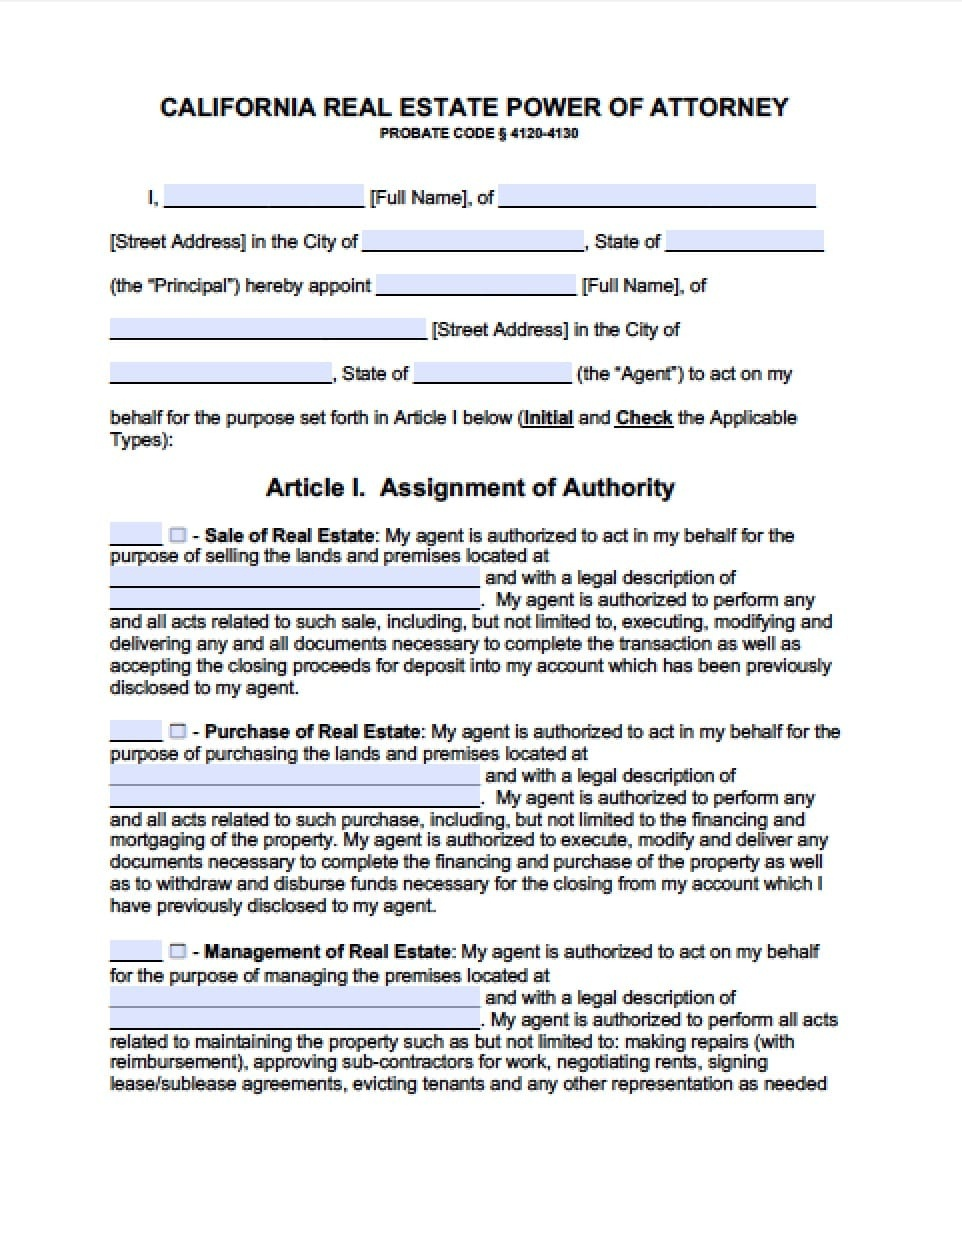 California Real Estate Only Power Of Attorney Form - Power Of - Free Printable Power Of Attorney Form California